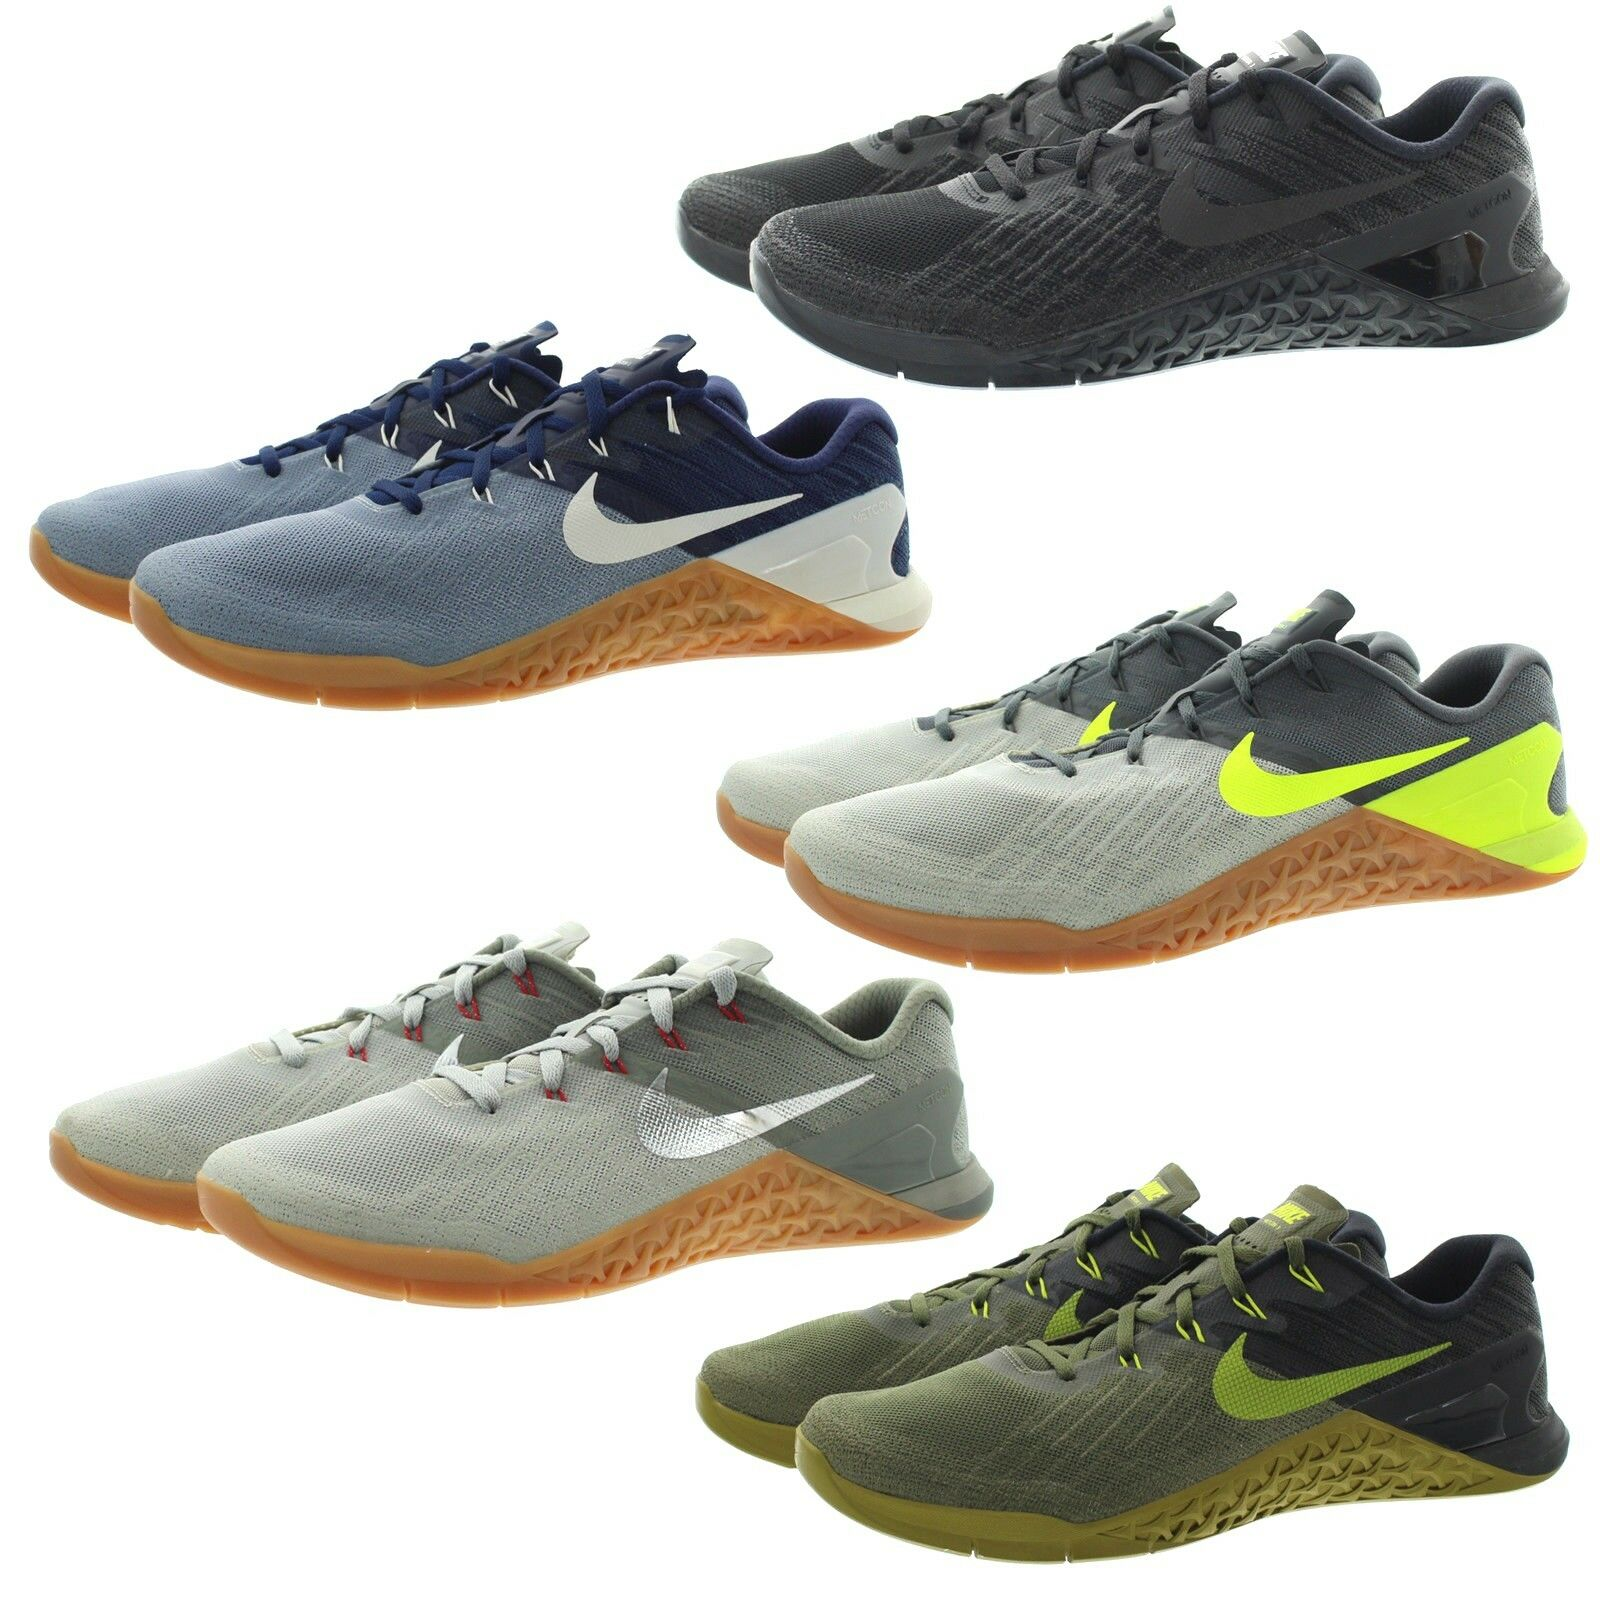 Nike 852928 Mens Metcon 3 Flywire Cross Training Running shoes Sneakers